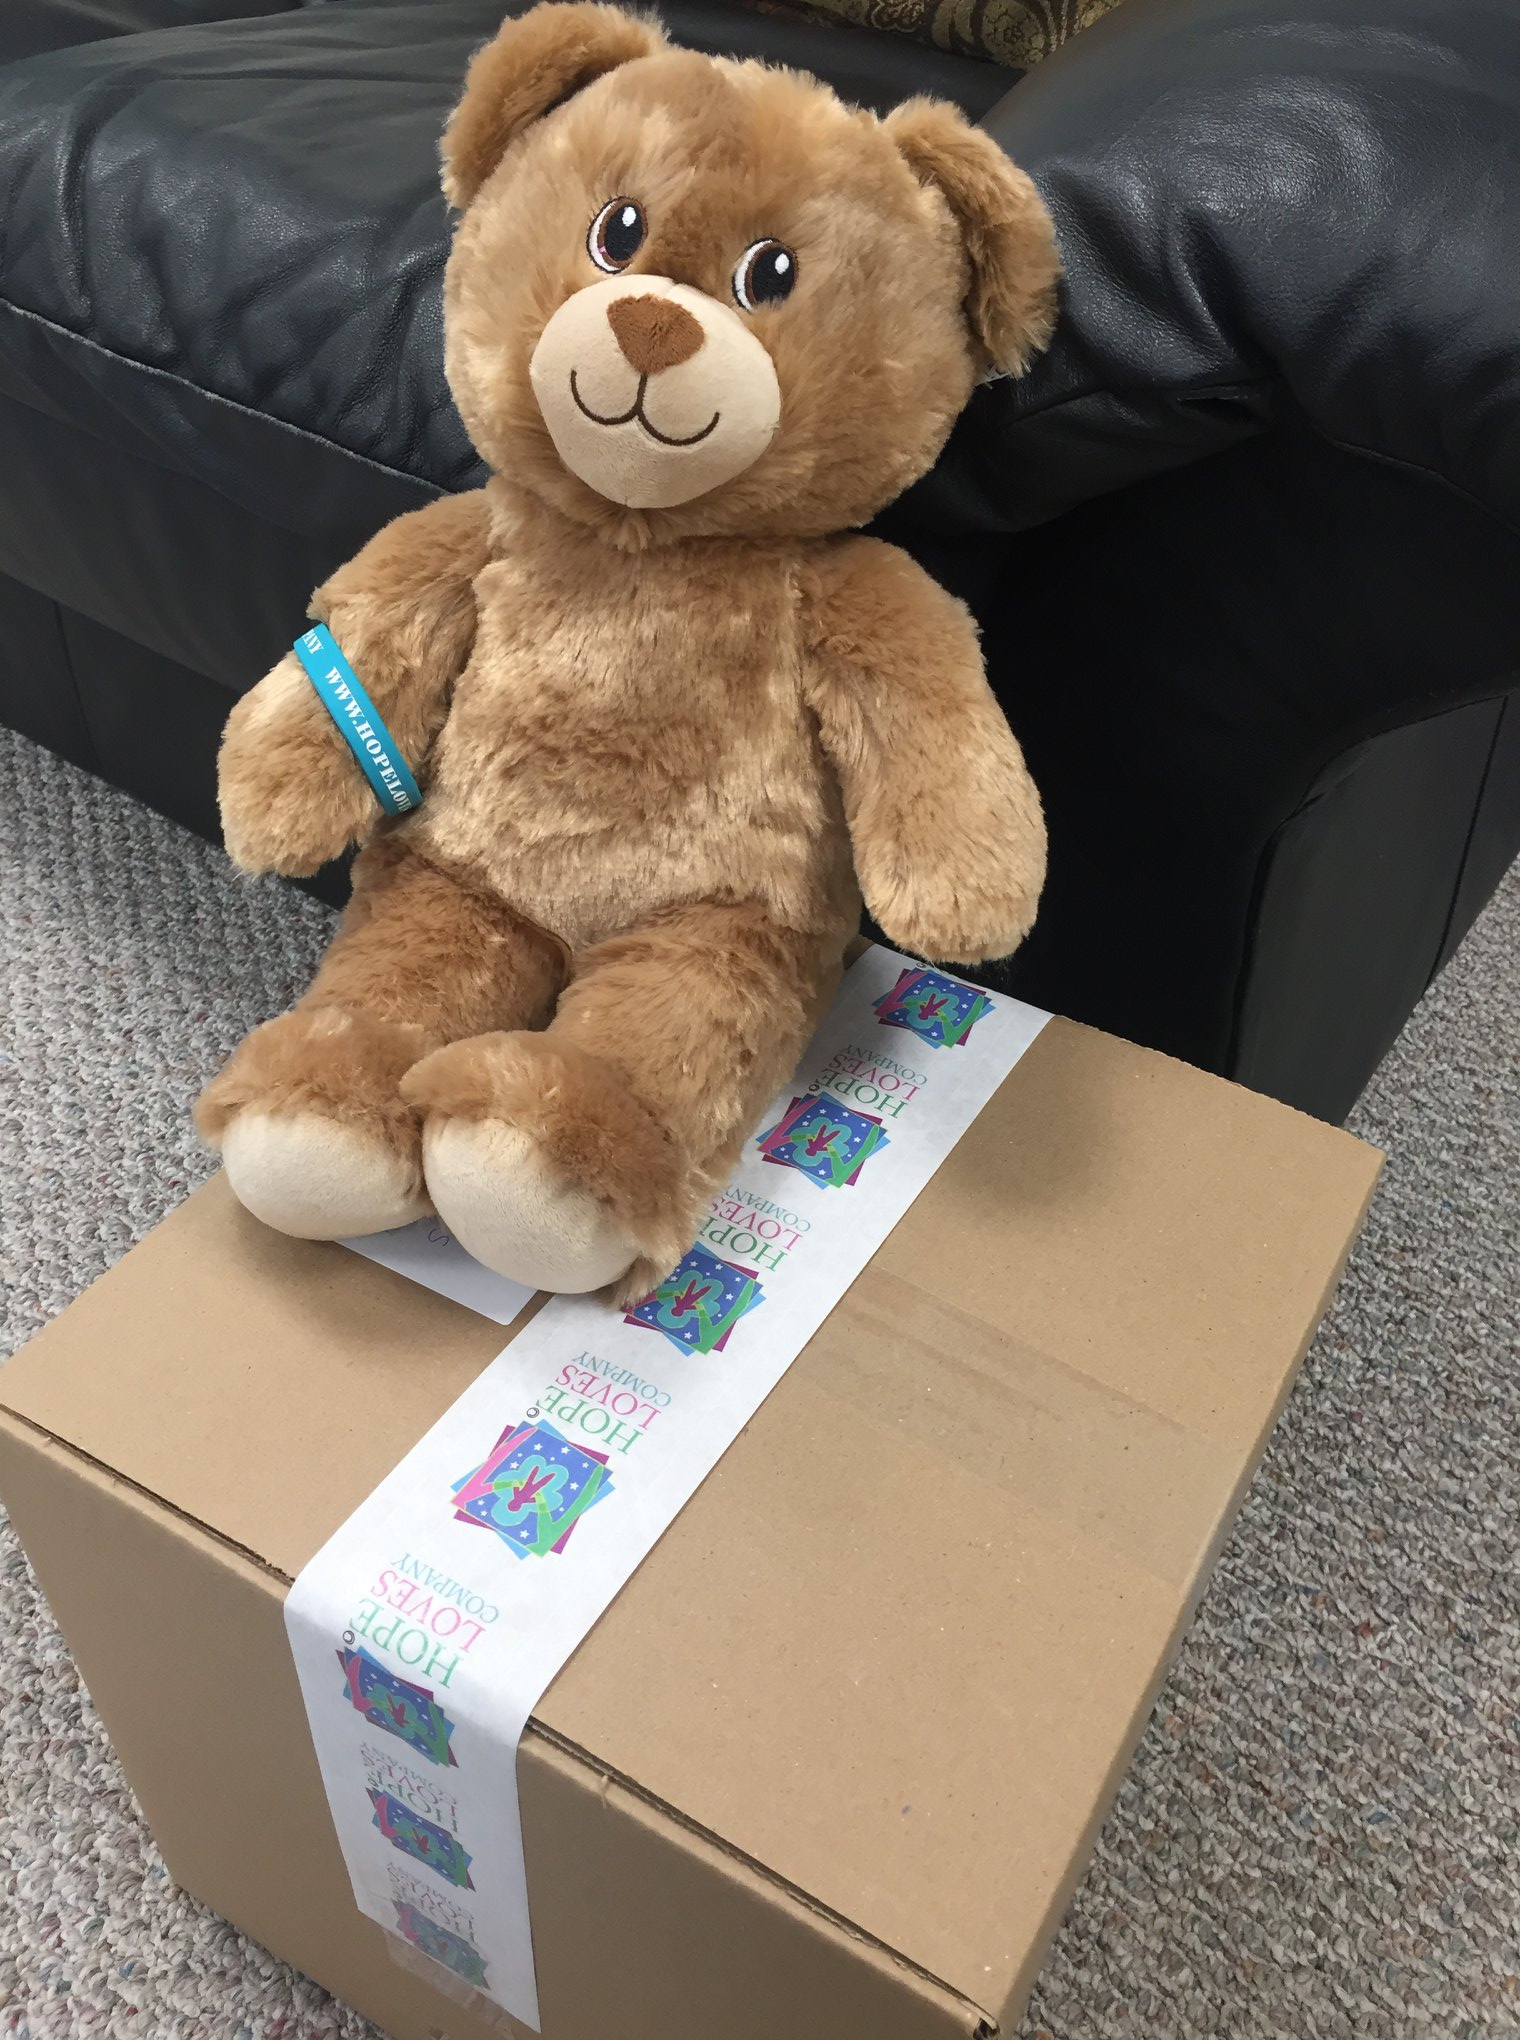 Maddyloo is Hope Loves Company's First Hug of Hope Care Package Sponsor: California Business Sponsors Care Packages for ALS Children Caregivers